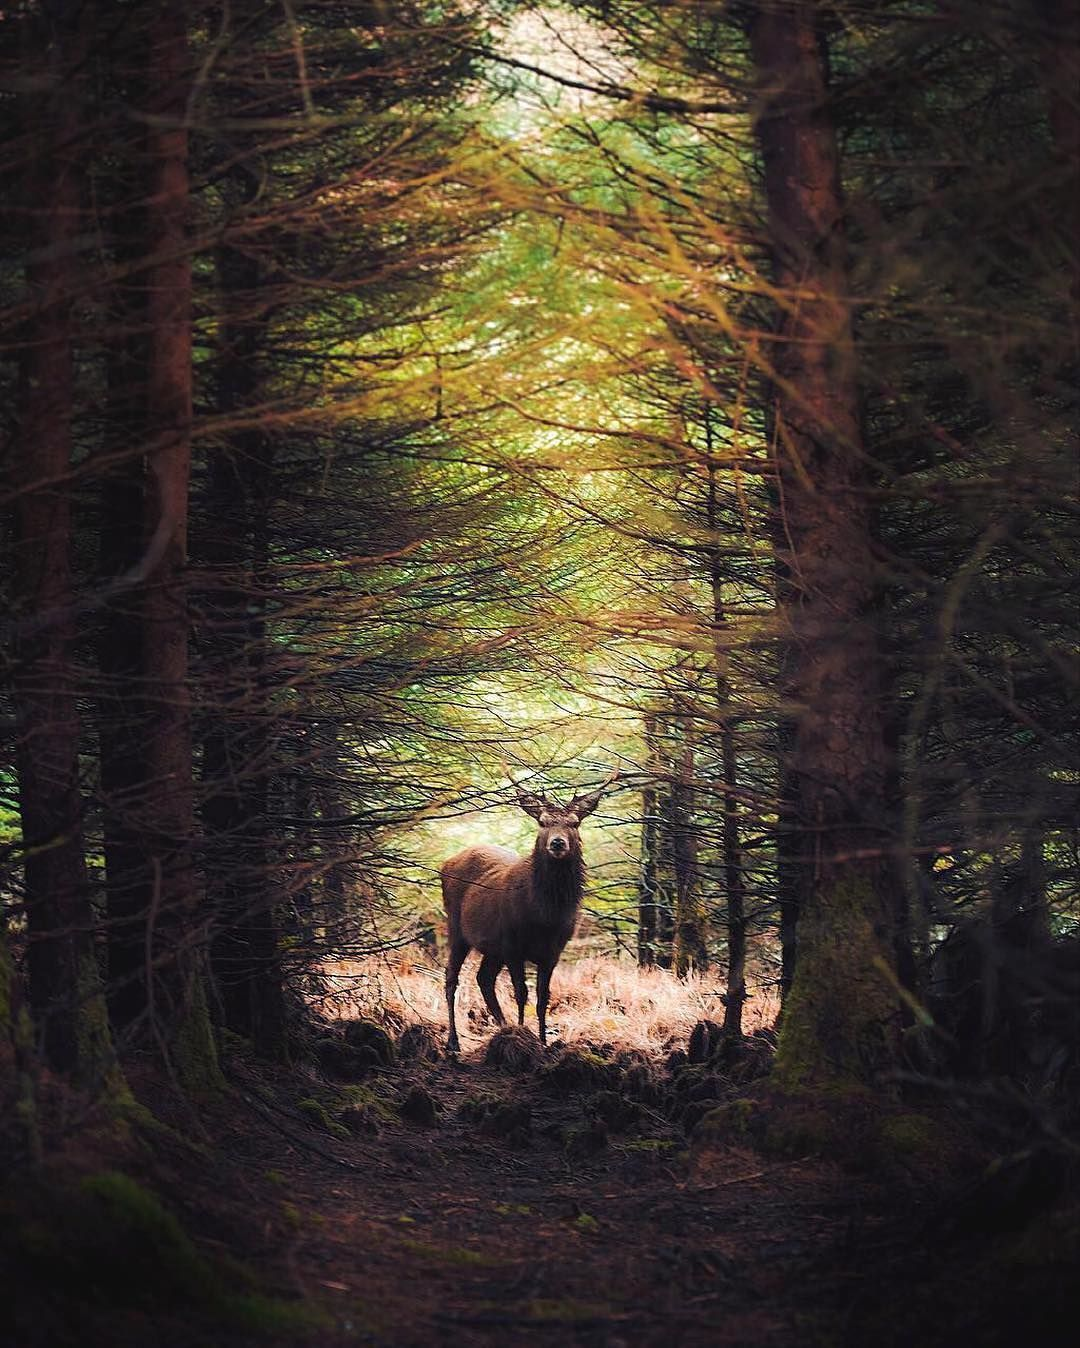 A beutiful encounter in the forest. Scotland. Photo by